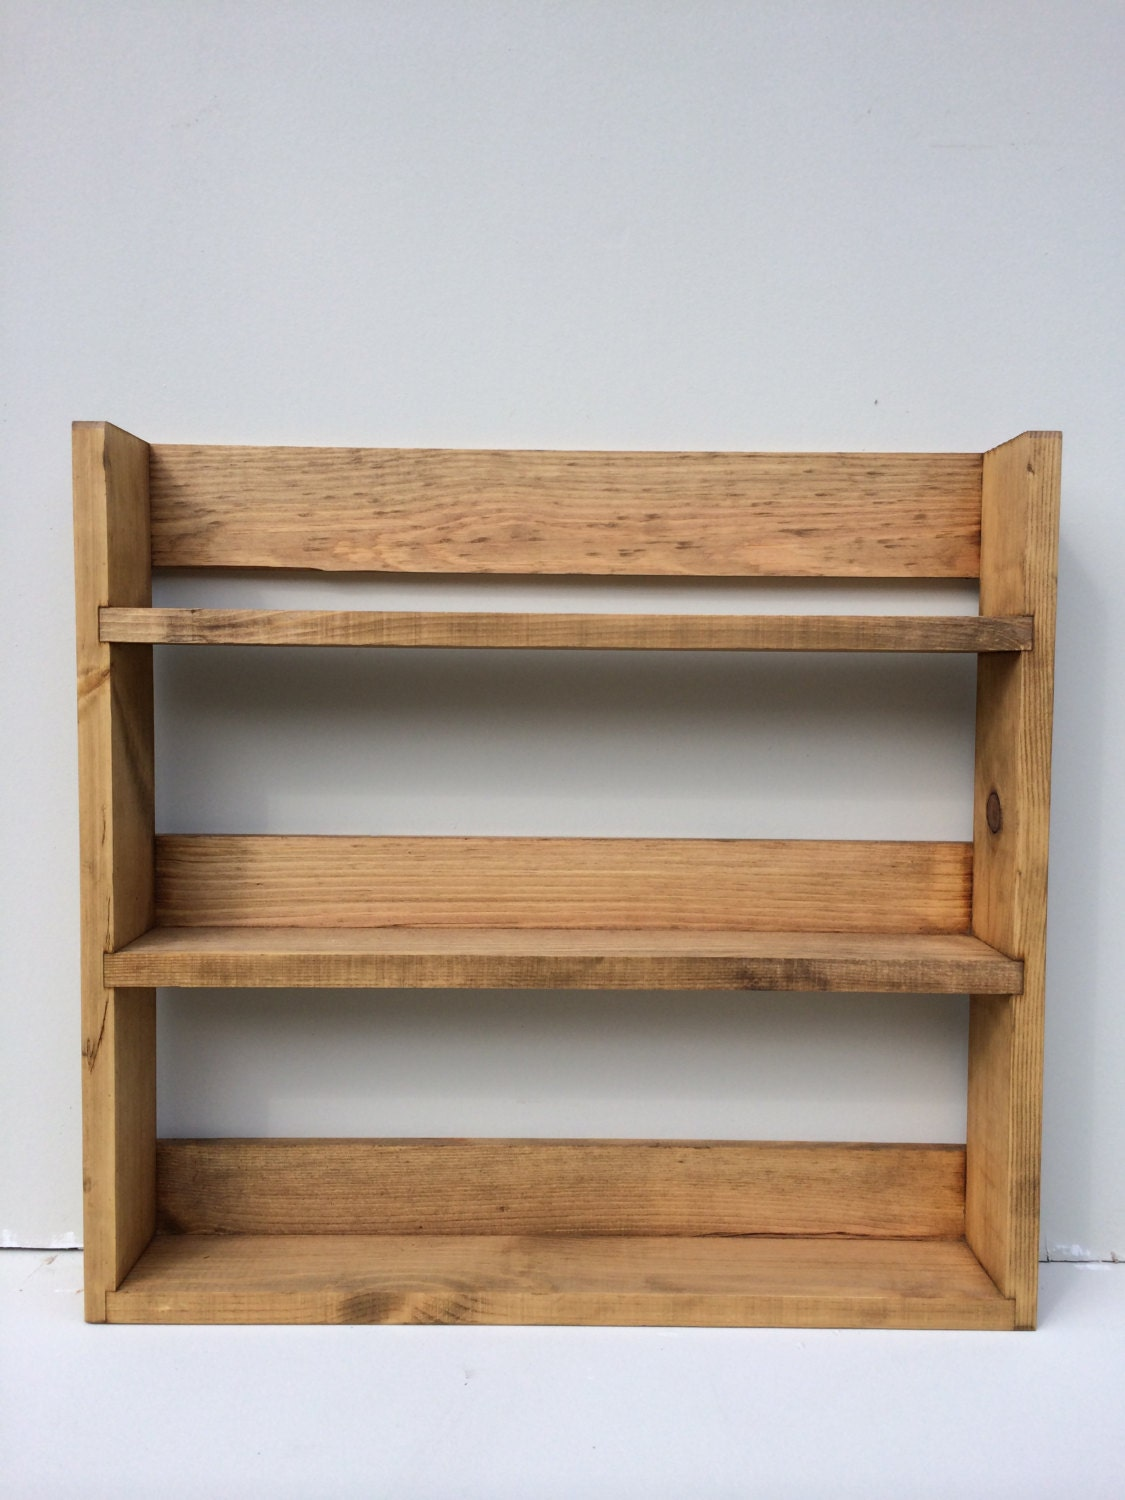 reclaimed rustic wooden spice rack 3 shelves 41cm tall open